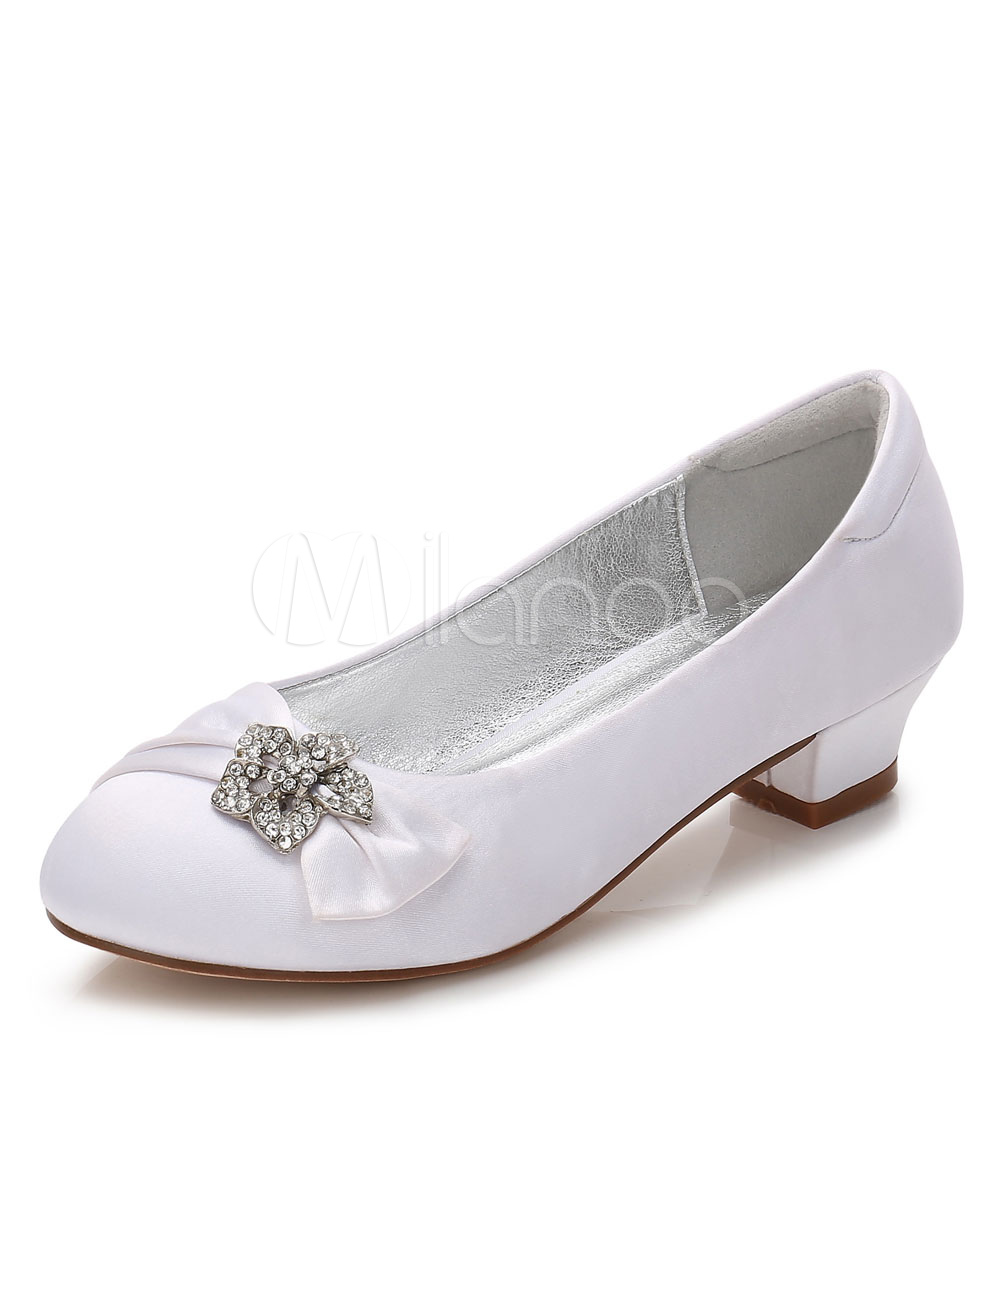 White Flower Girls Shoes Rhinestones Chunky Heel Round Toe Satin Pumps